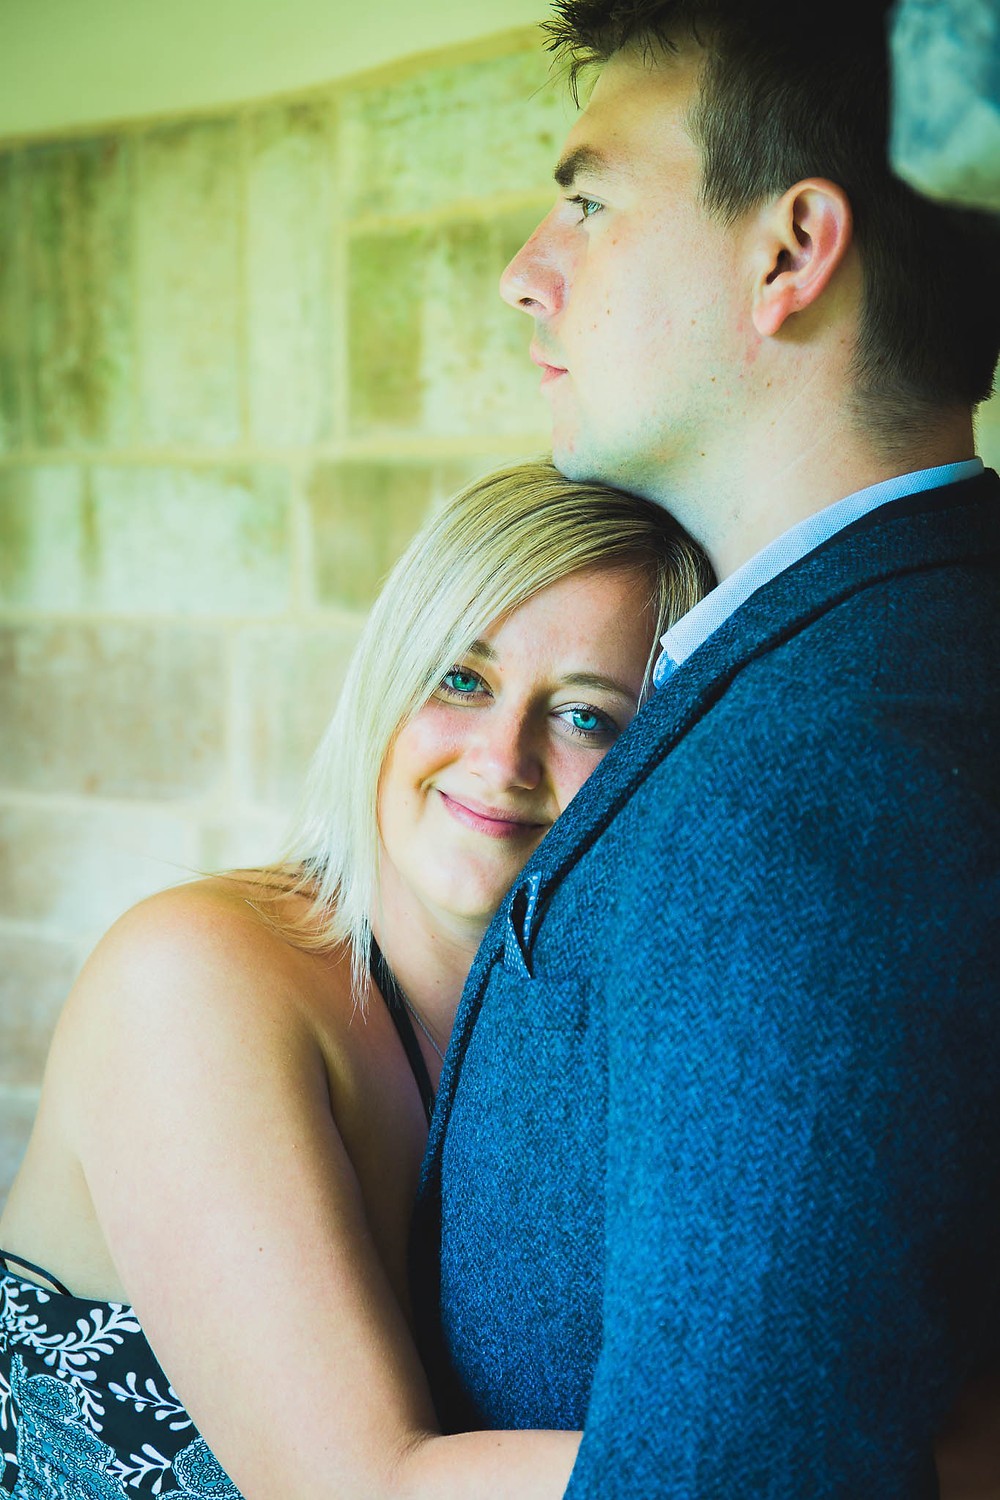 Adam and Becky Engagement Session at Coombe Abbey, Coventry